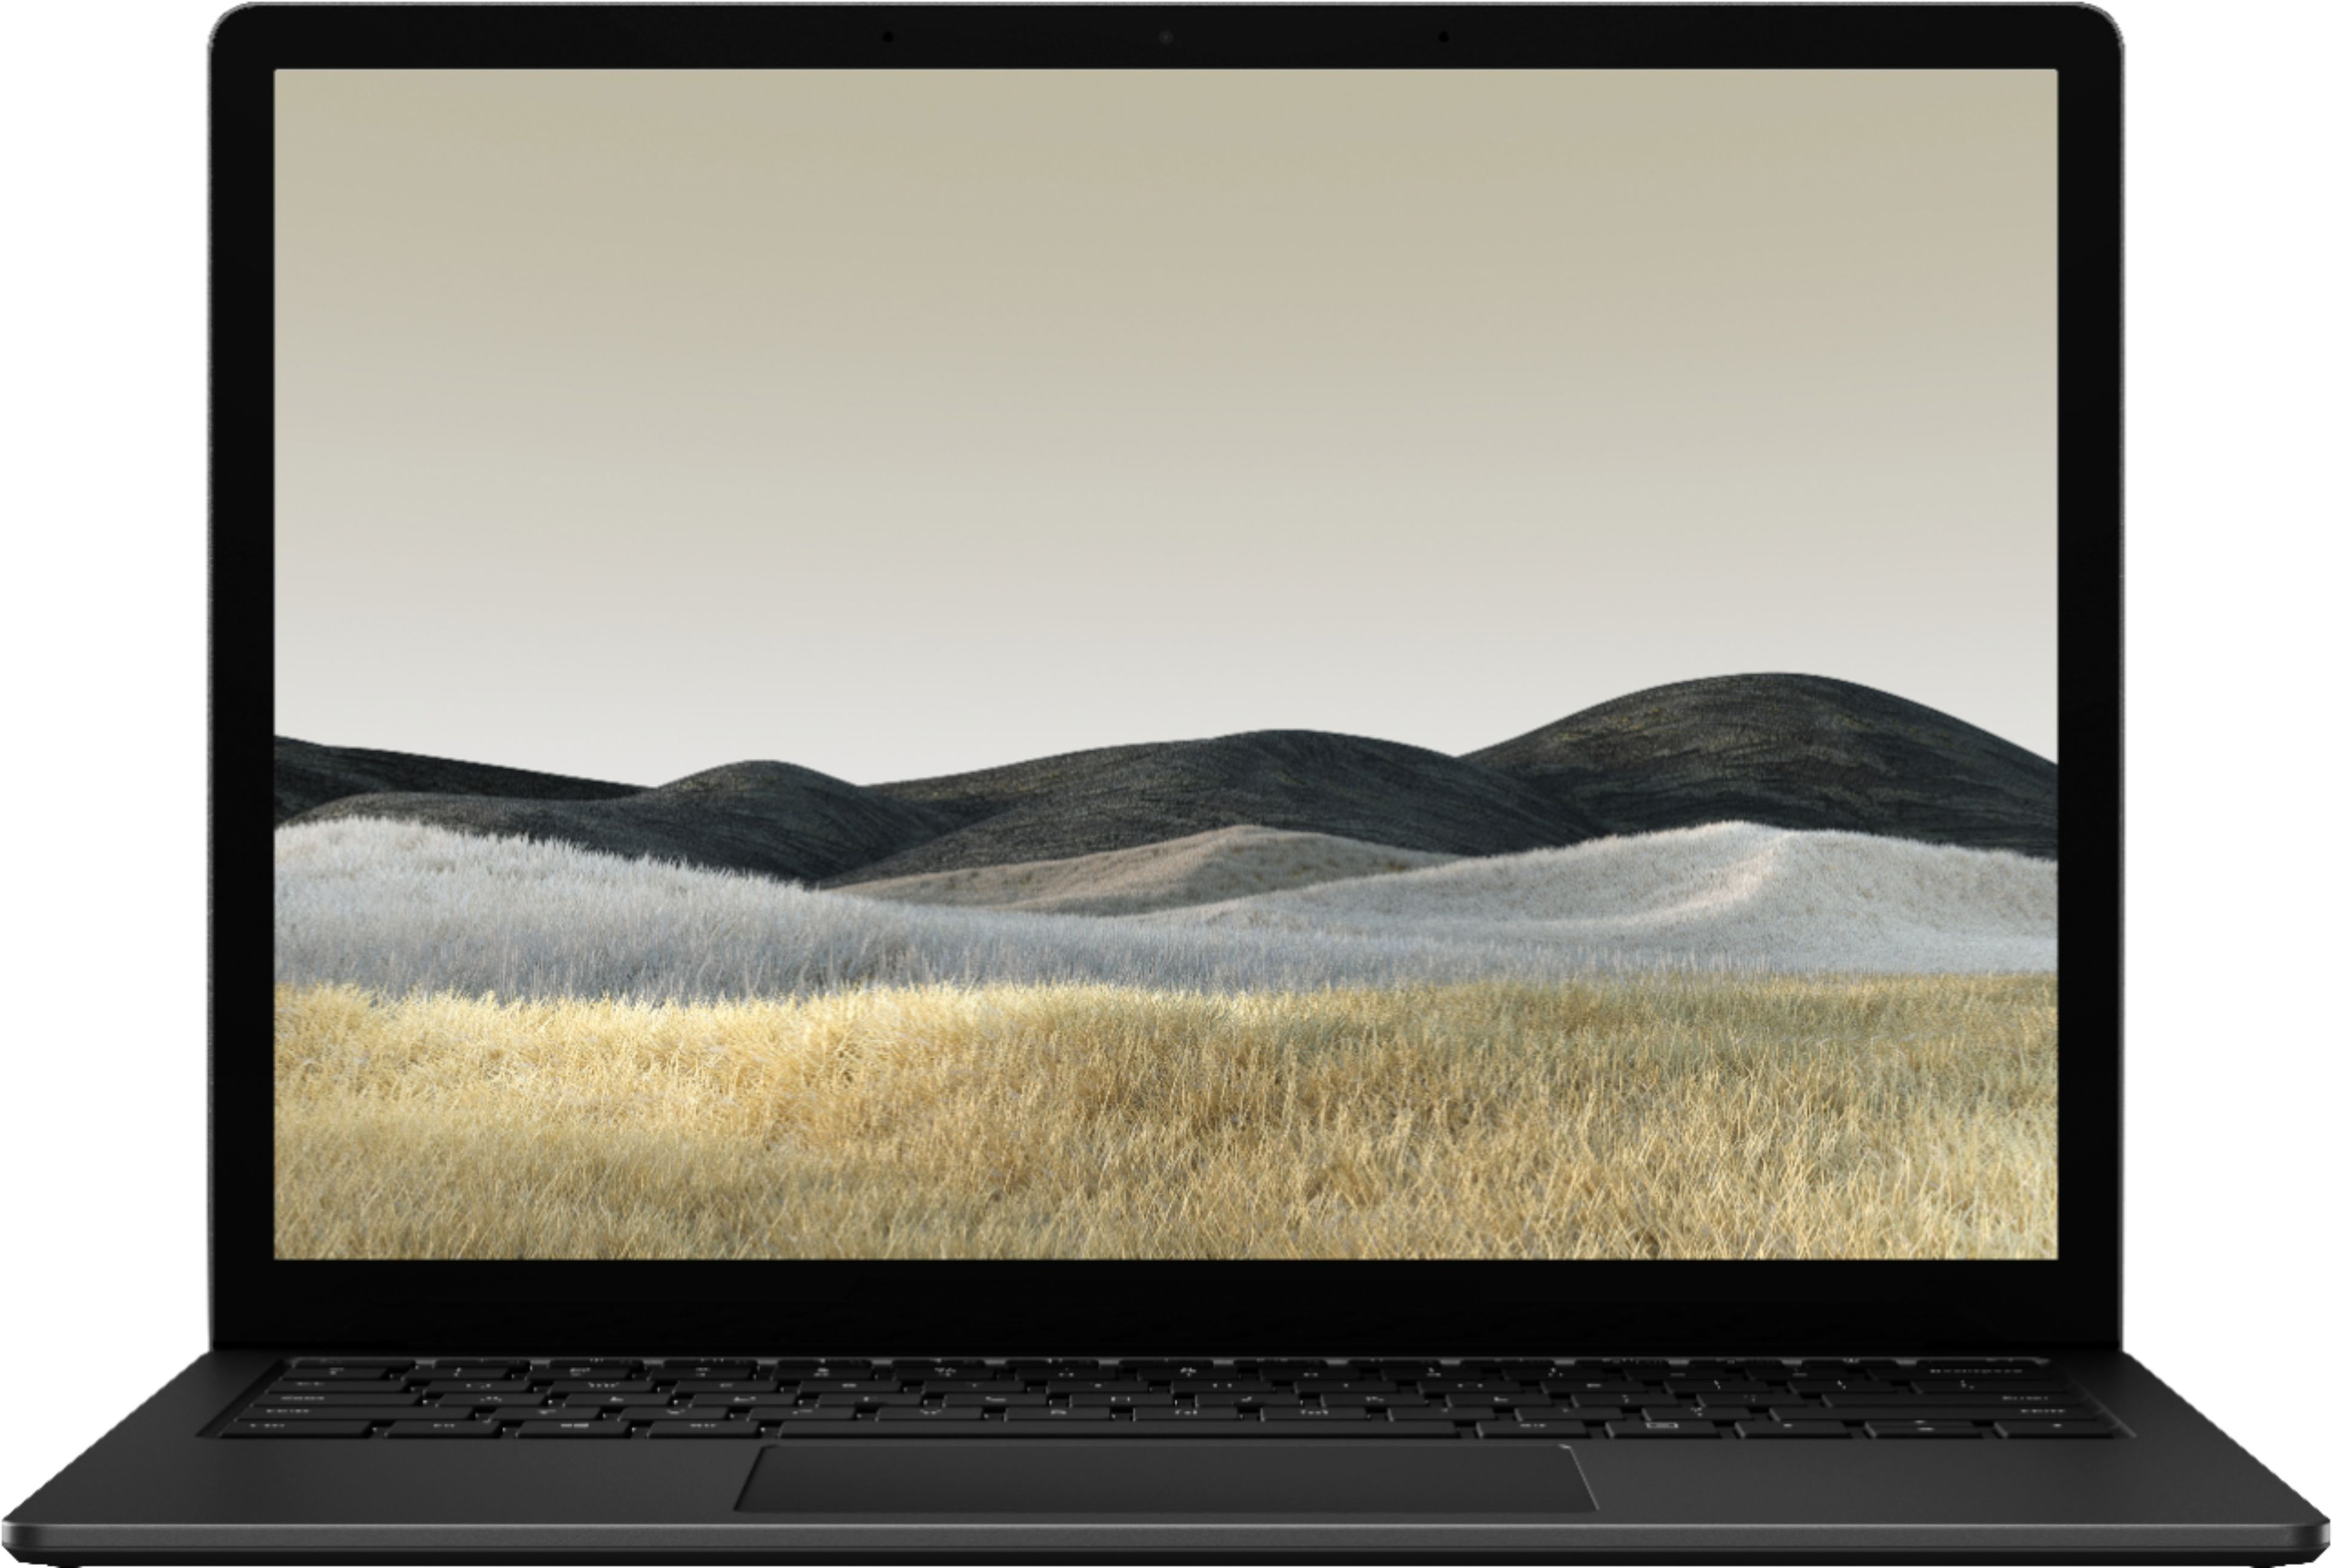 """Alt View Zoom 11. Microsoft - Surface Laptop 3 - 13.5"""" Touch-Screen - Intel Core i7 - 16GB Memory - 256GB Solid State Drive (Latest Model) - Matte Black."""